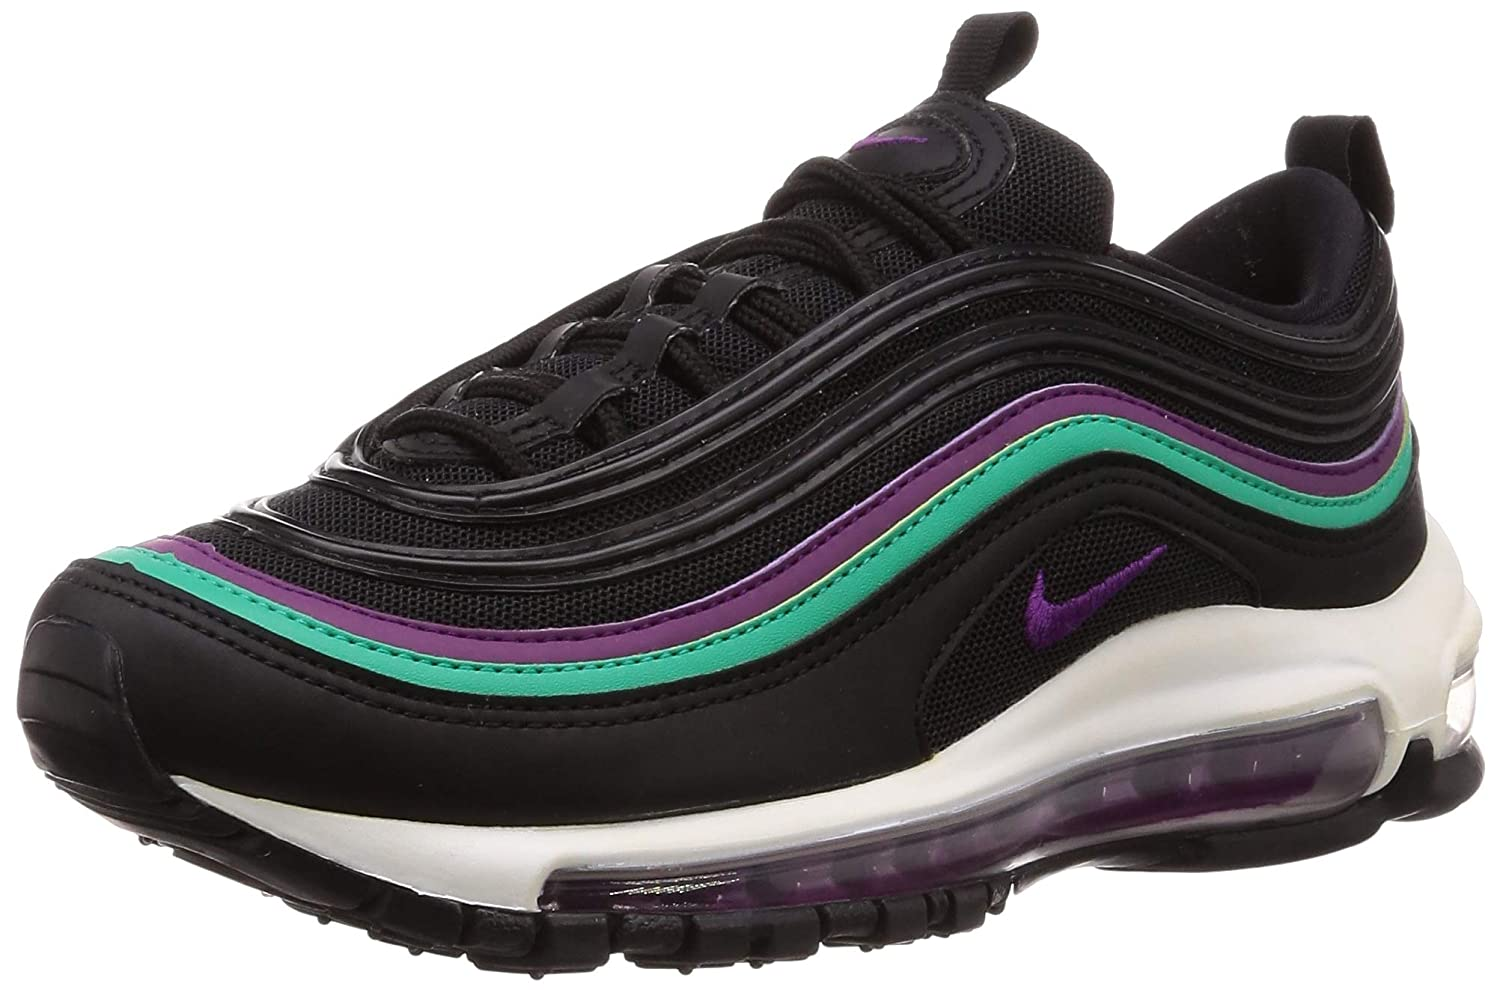 2018 nike Nike Air max 97 LX Hombres Atletismo Zapatos EUR